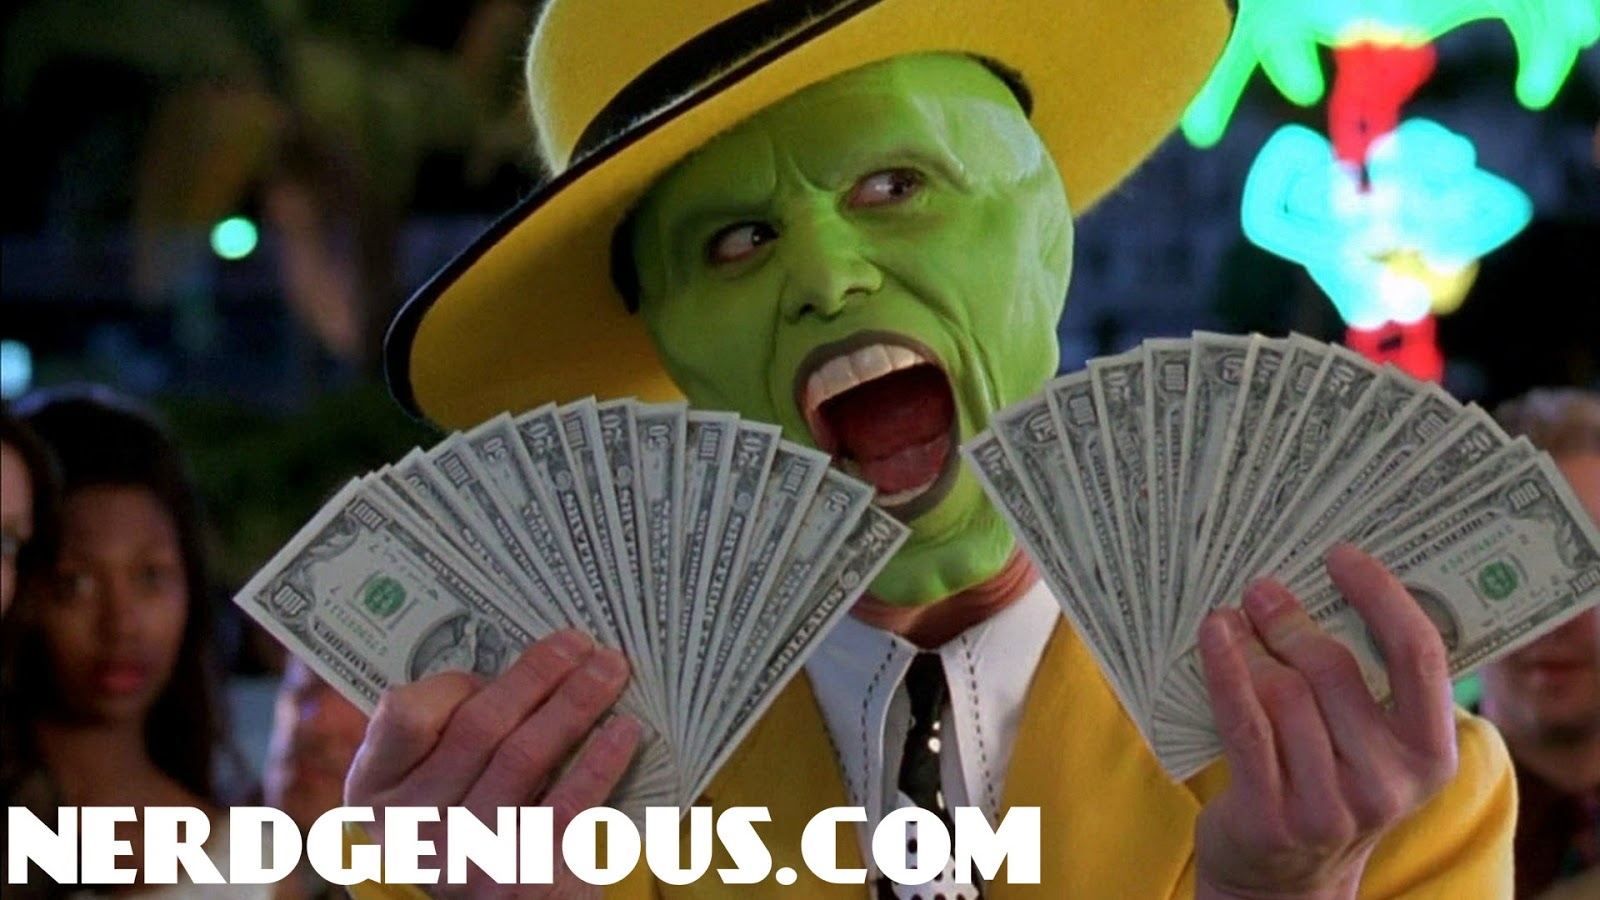 Anti-gun violence actor Jim Carrey in The Mask, a movie that makes comedy out of gun violence